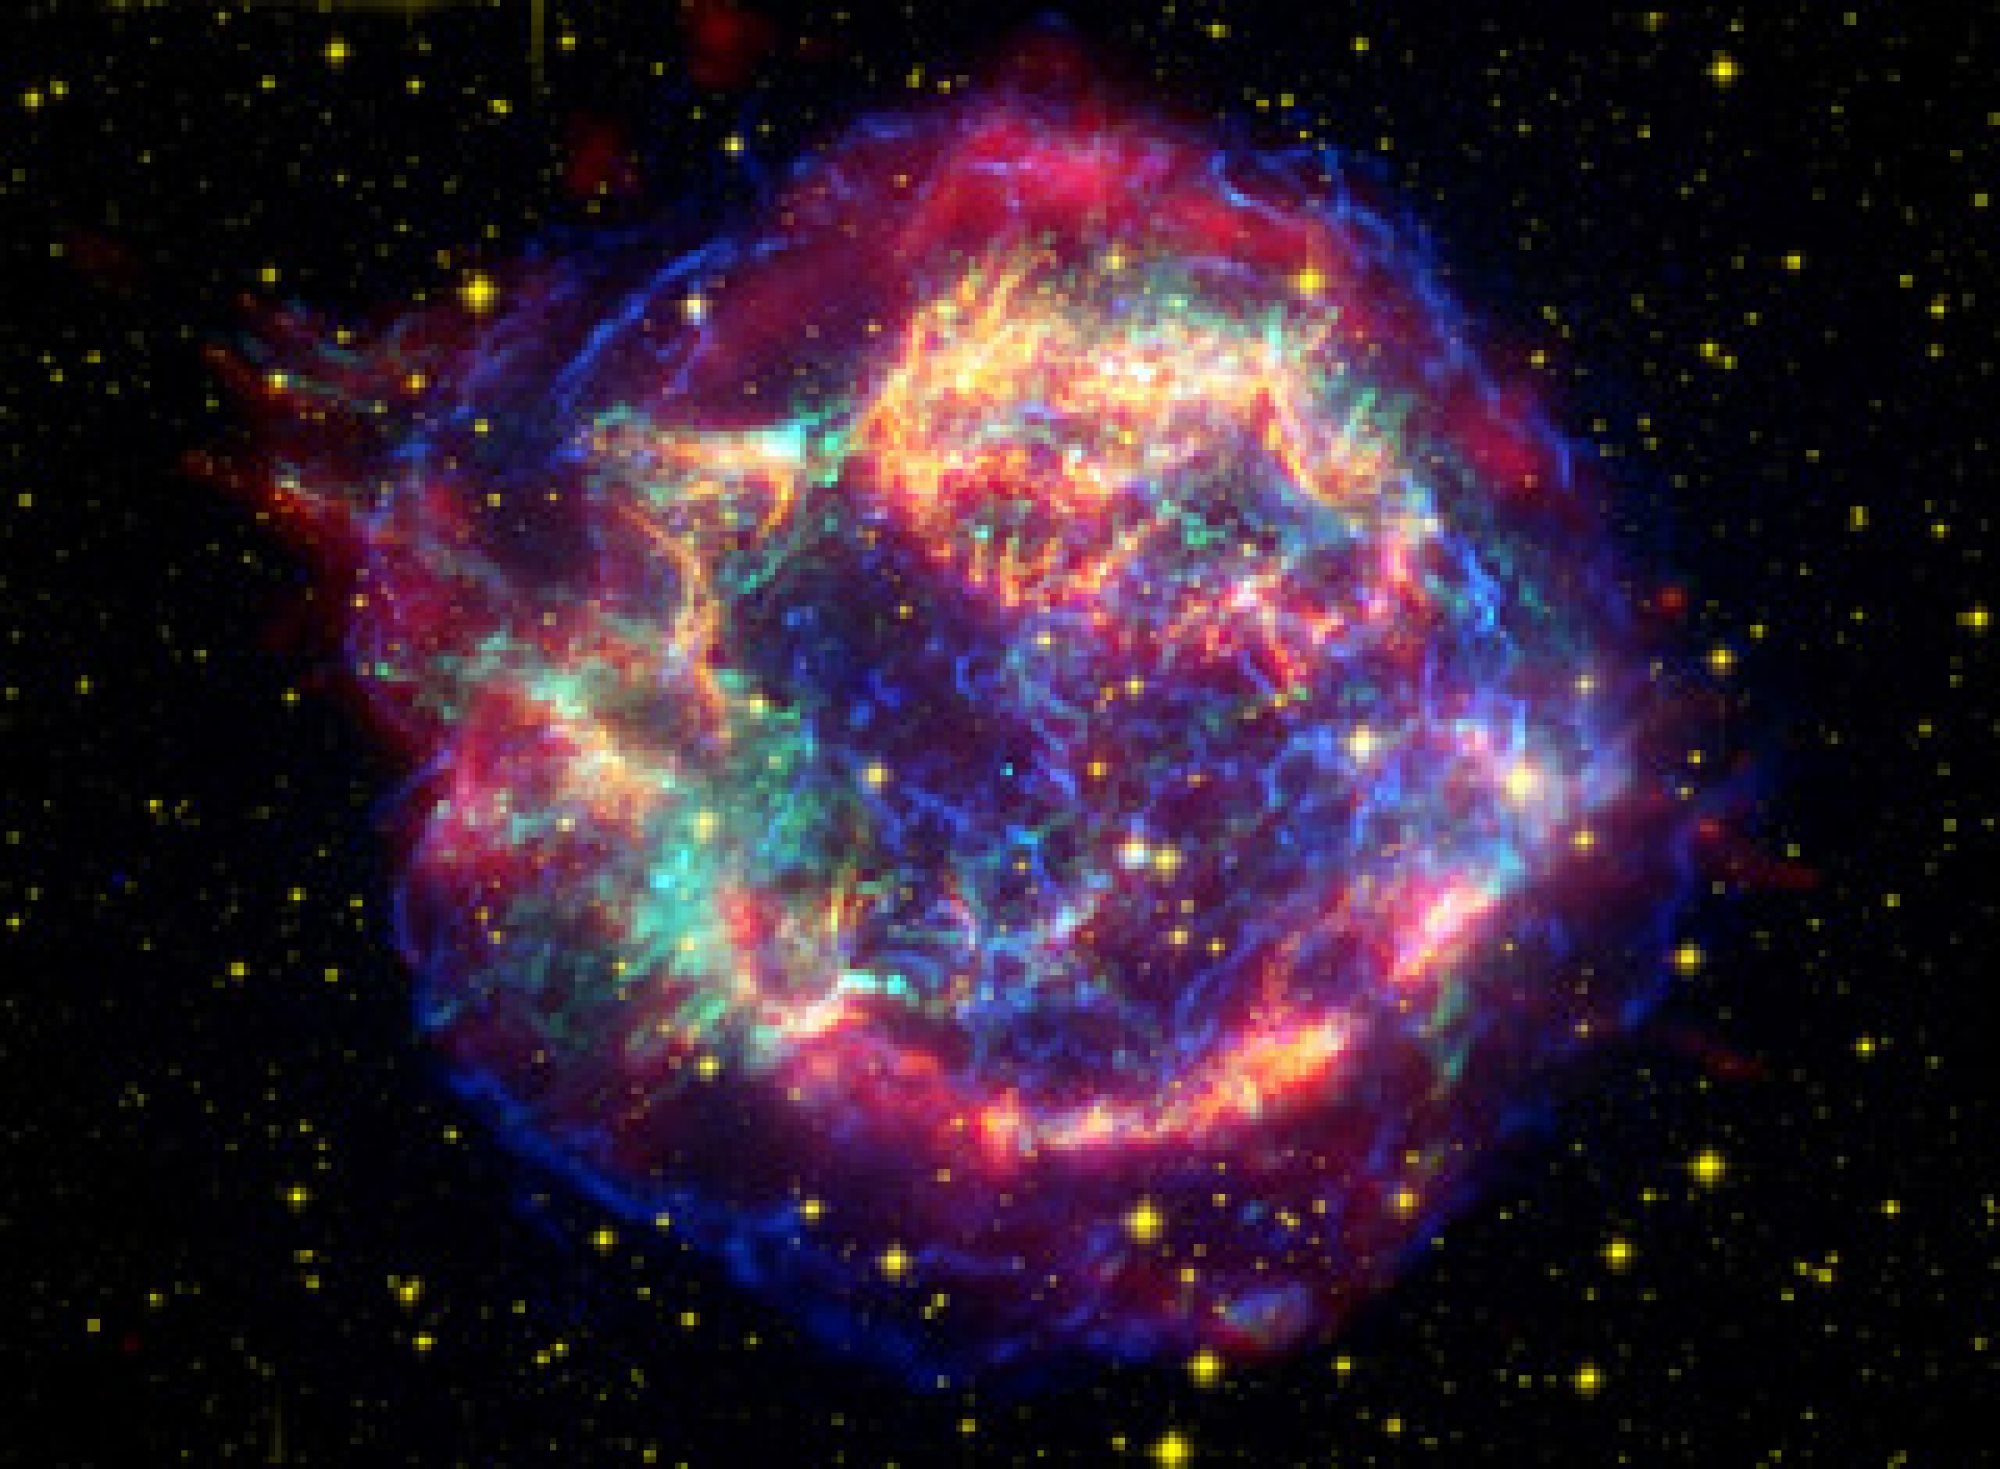 This stunning false-color picture shows off the many sides of the supernova remnant Cassiopeia A. It is made up of images taken by three of NASA's Great Observatories, using three different wavebands of light. Infrared data from the Spitzer Space Tel